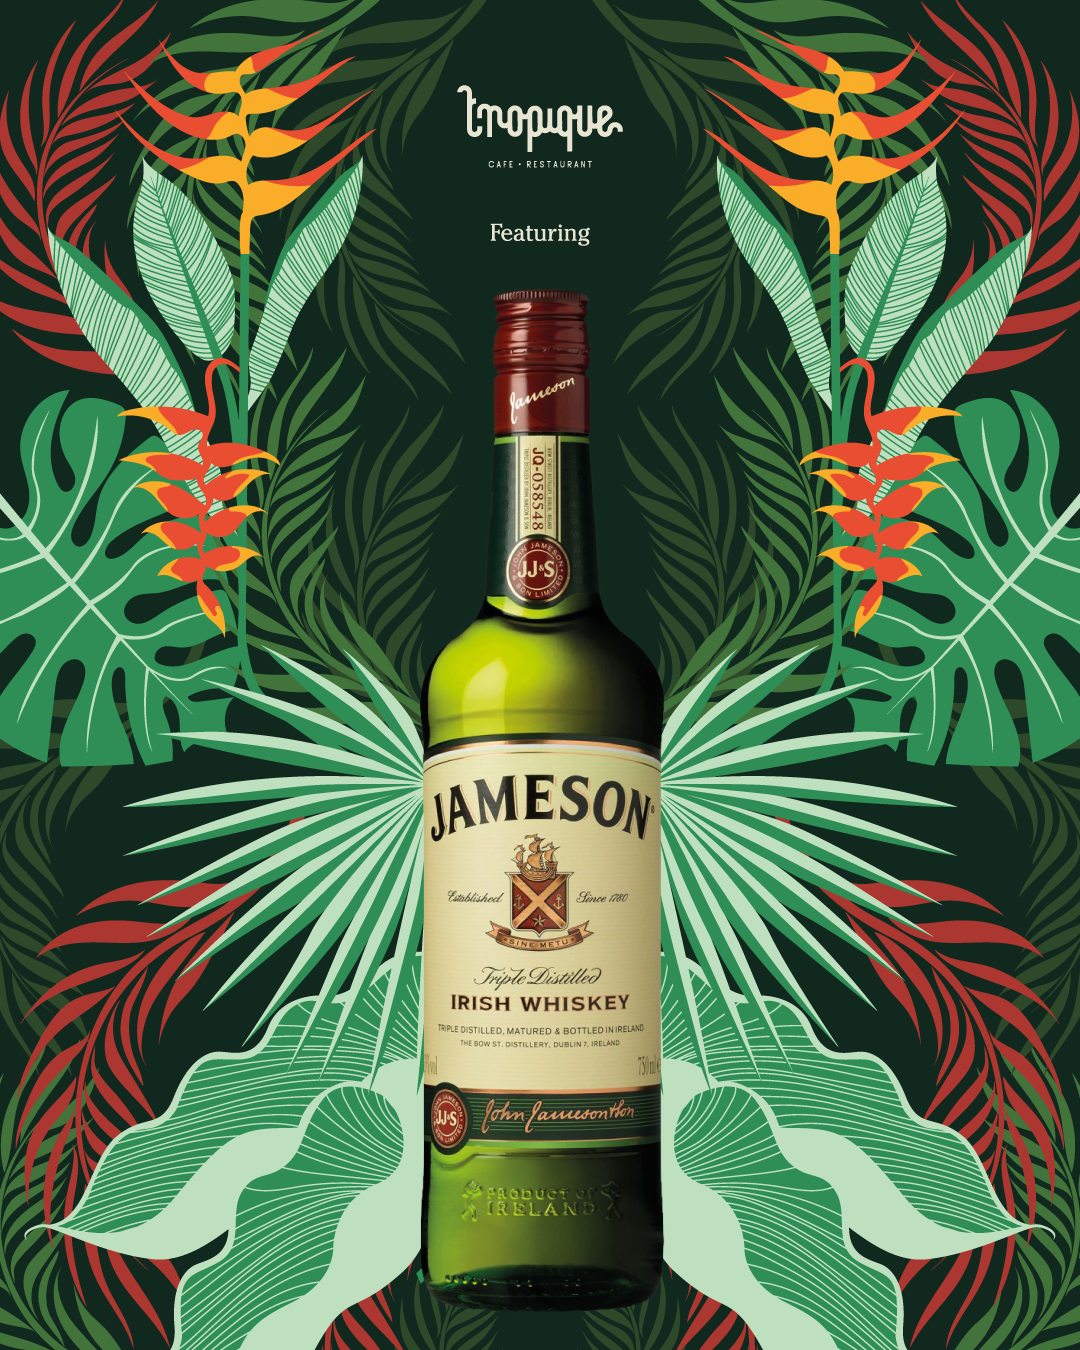 Tropique-cafe-and-restaurant_Jameson-Irish-whiskey_edit.png